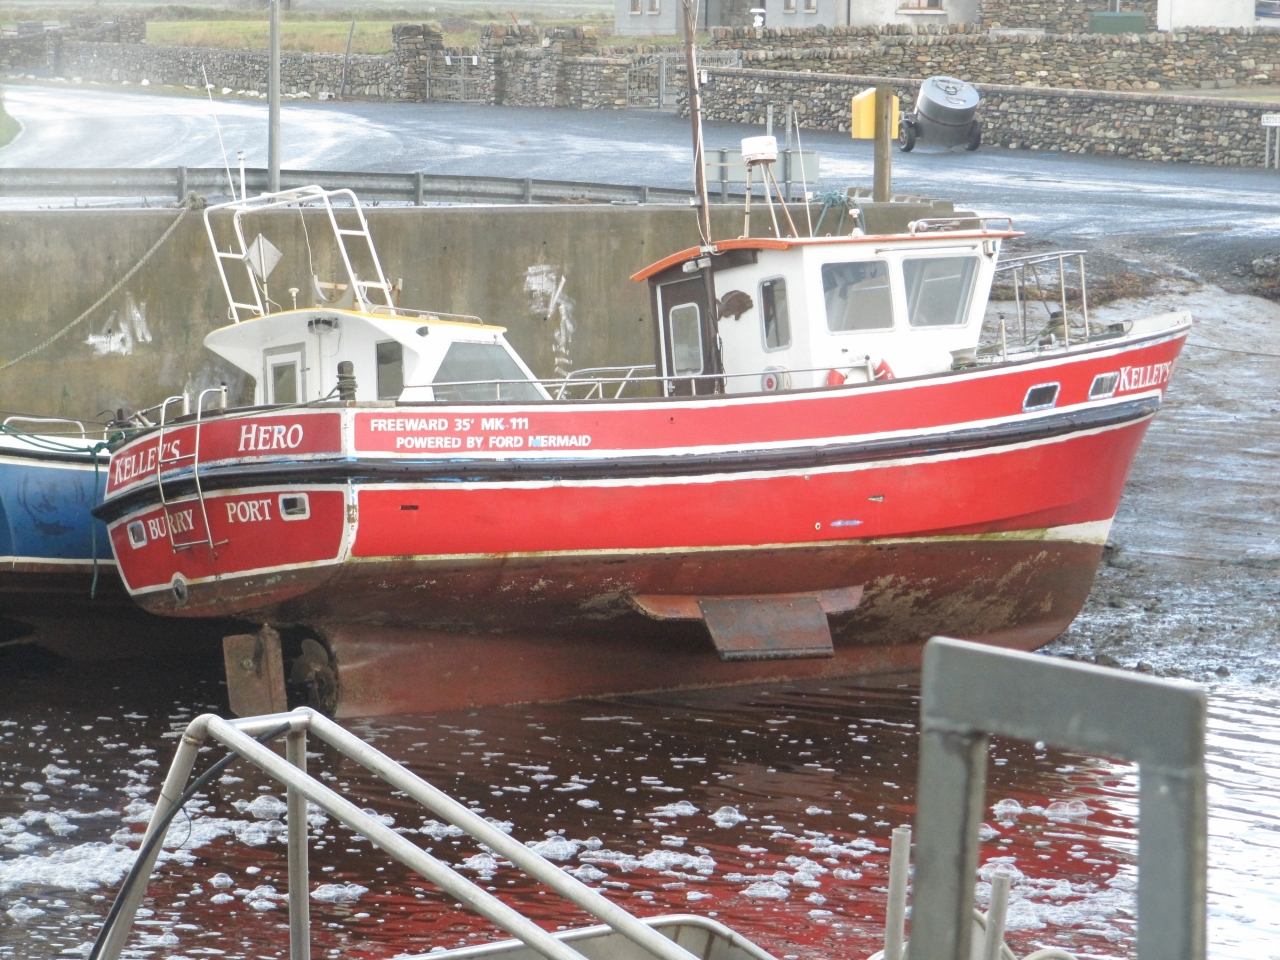 Kelly's Hero waiting for high tide.